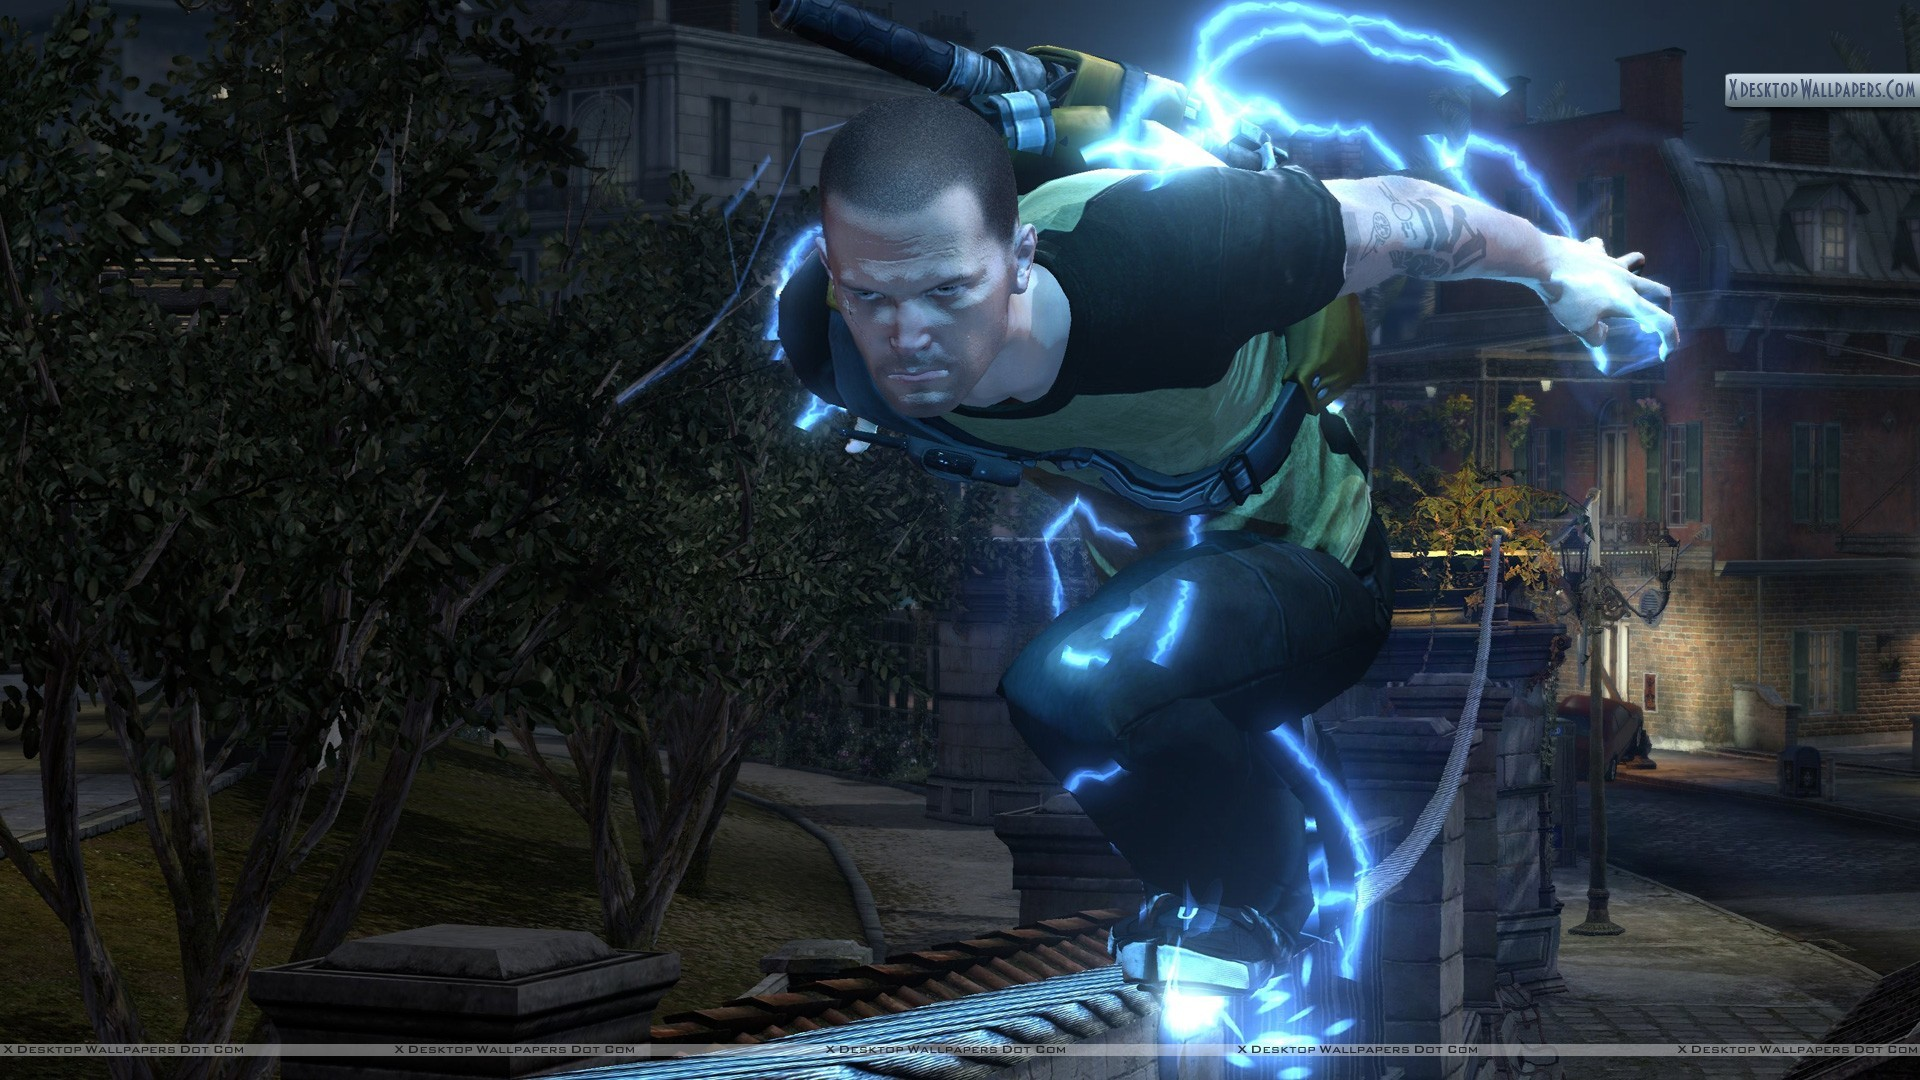 1920x1080 Infamous 2 Adventure Video Game Wallpapers 2560x1600 1029627